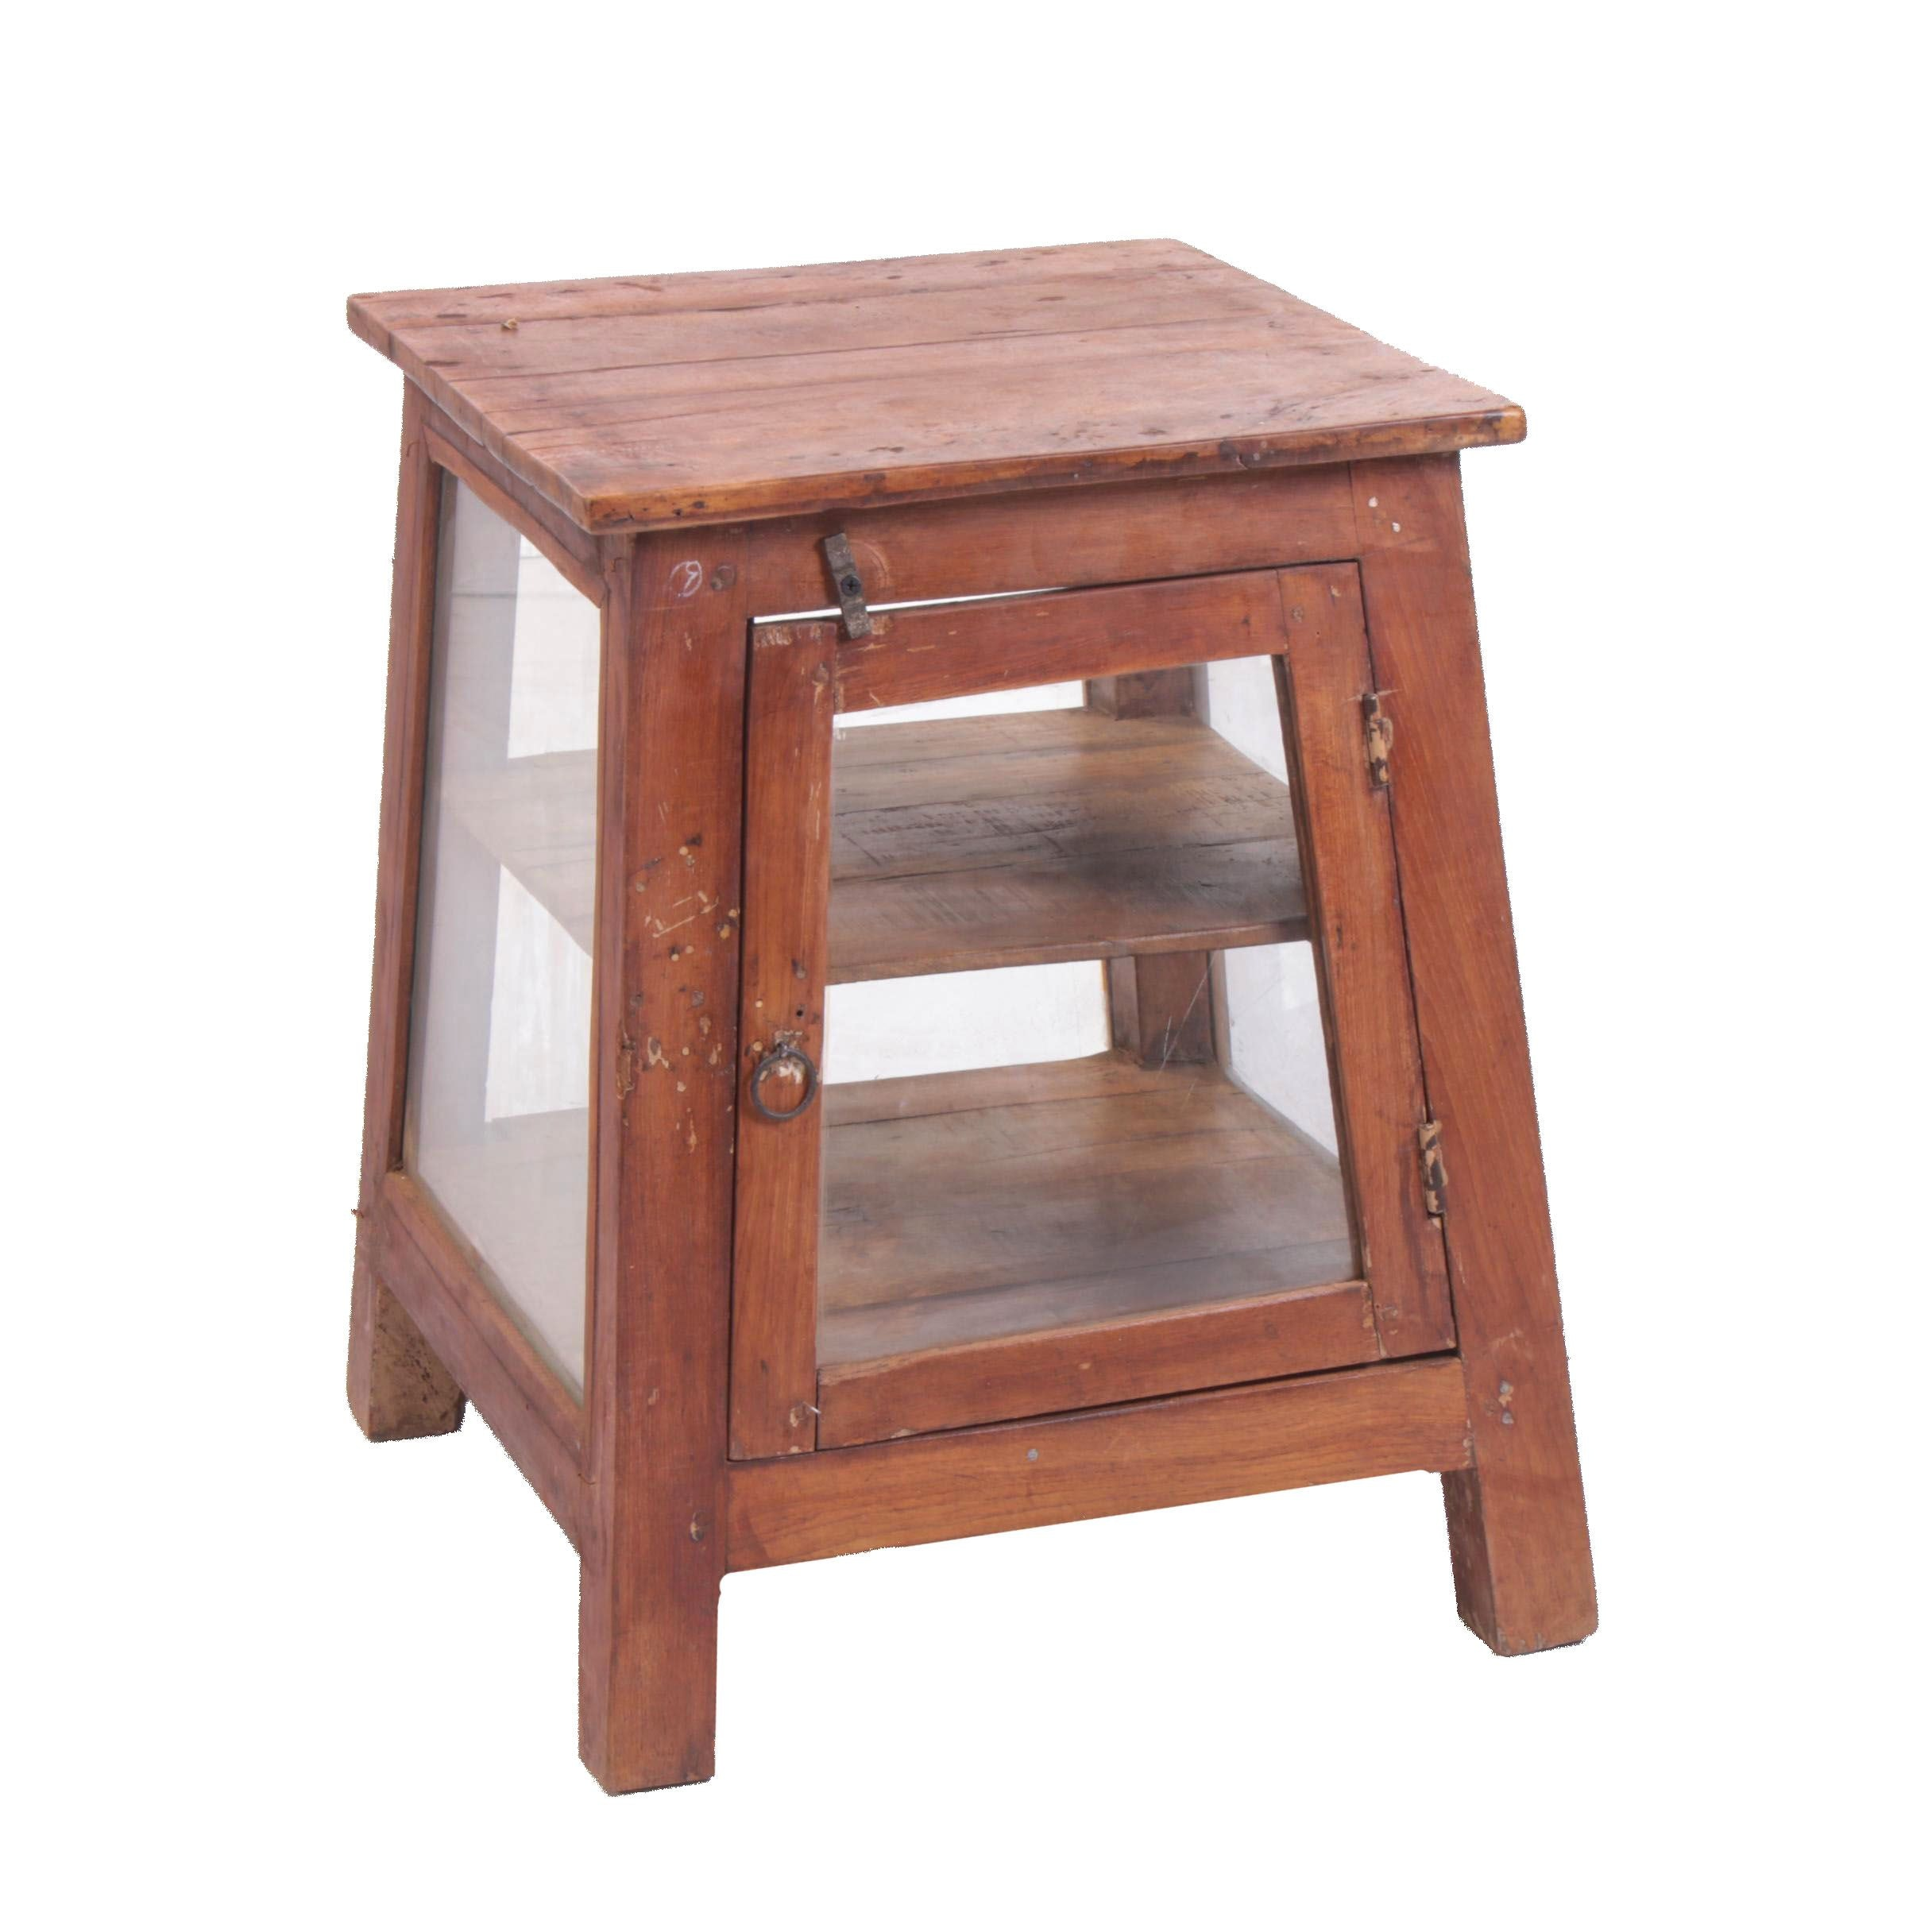 Craftsman Style Hardwood Three-Tier Display Side Table, 21st Century